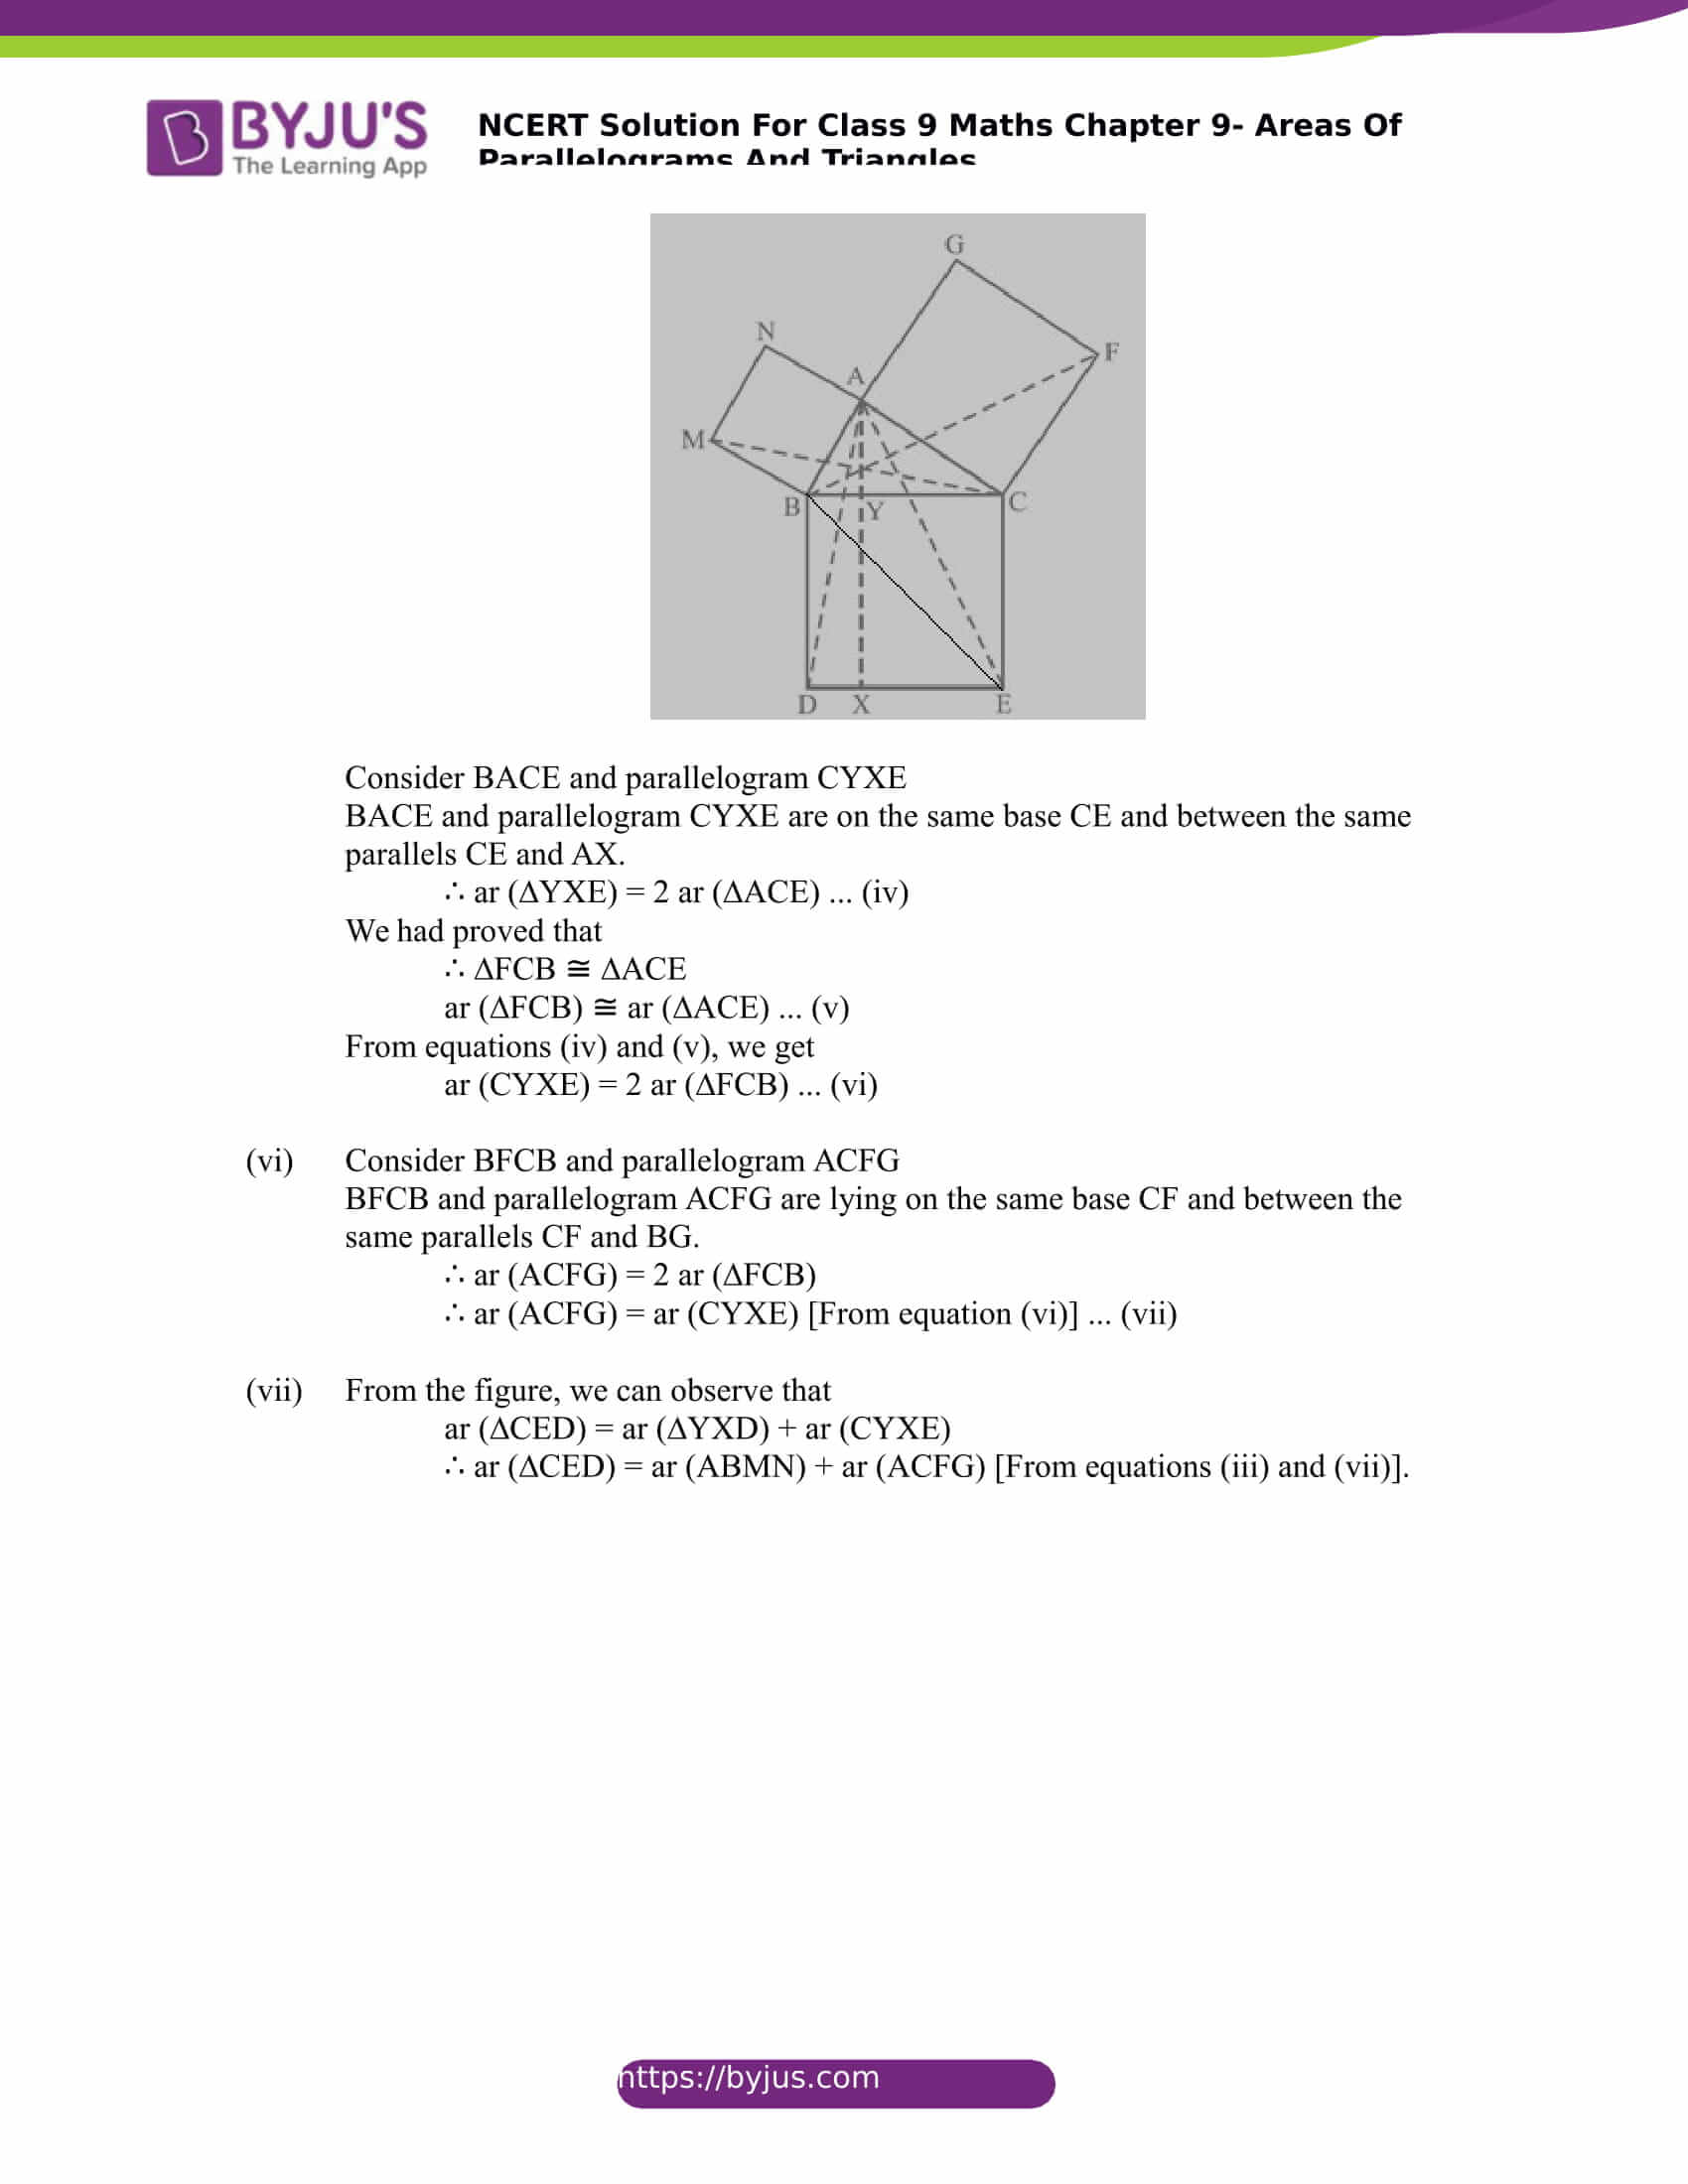 NCERT Solutions for class 9 Maths Chapter 9 Areas of parallelograms and triangles Part 32